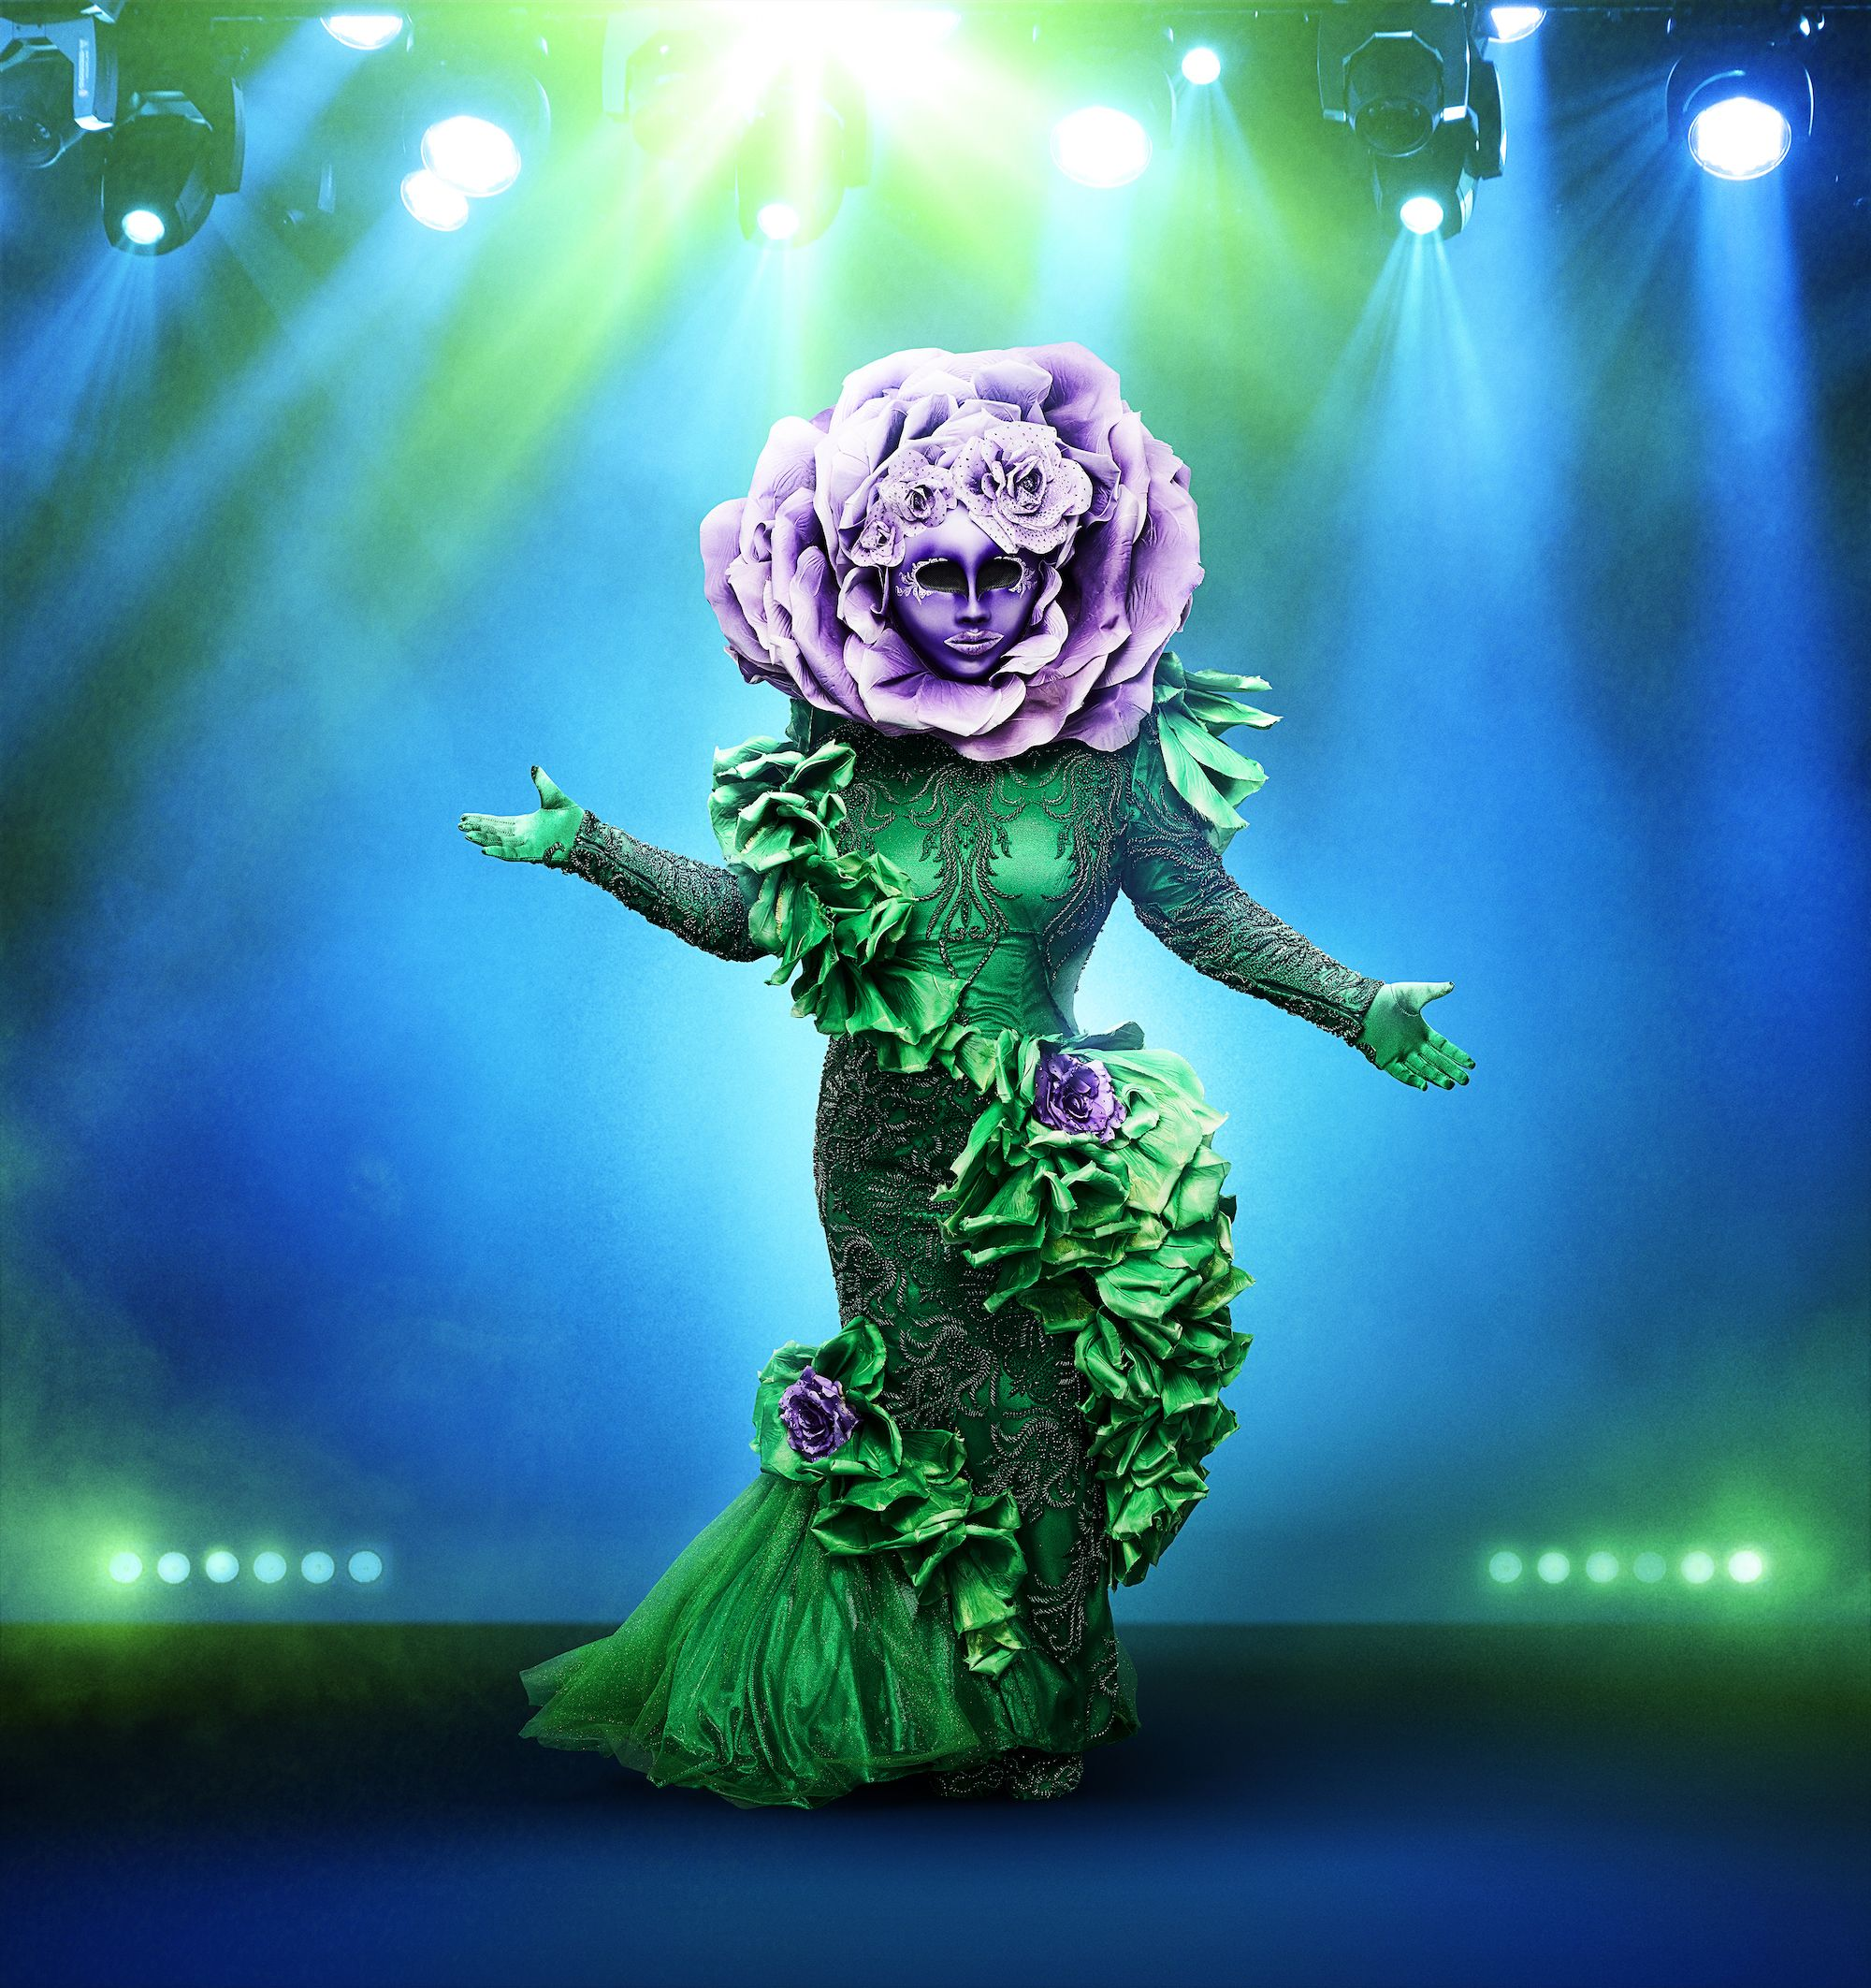 Who Is the Flower on 'The Masked Singer'? All Signs Point to Patti LaBelle